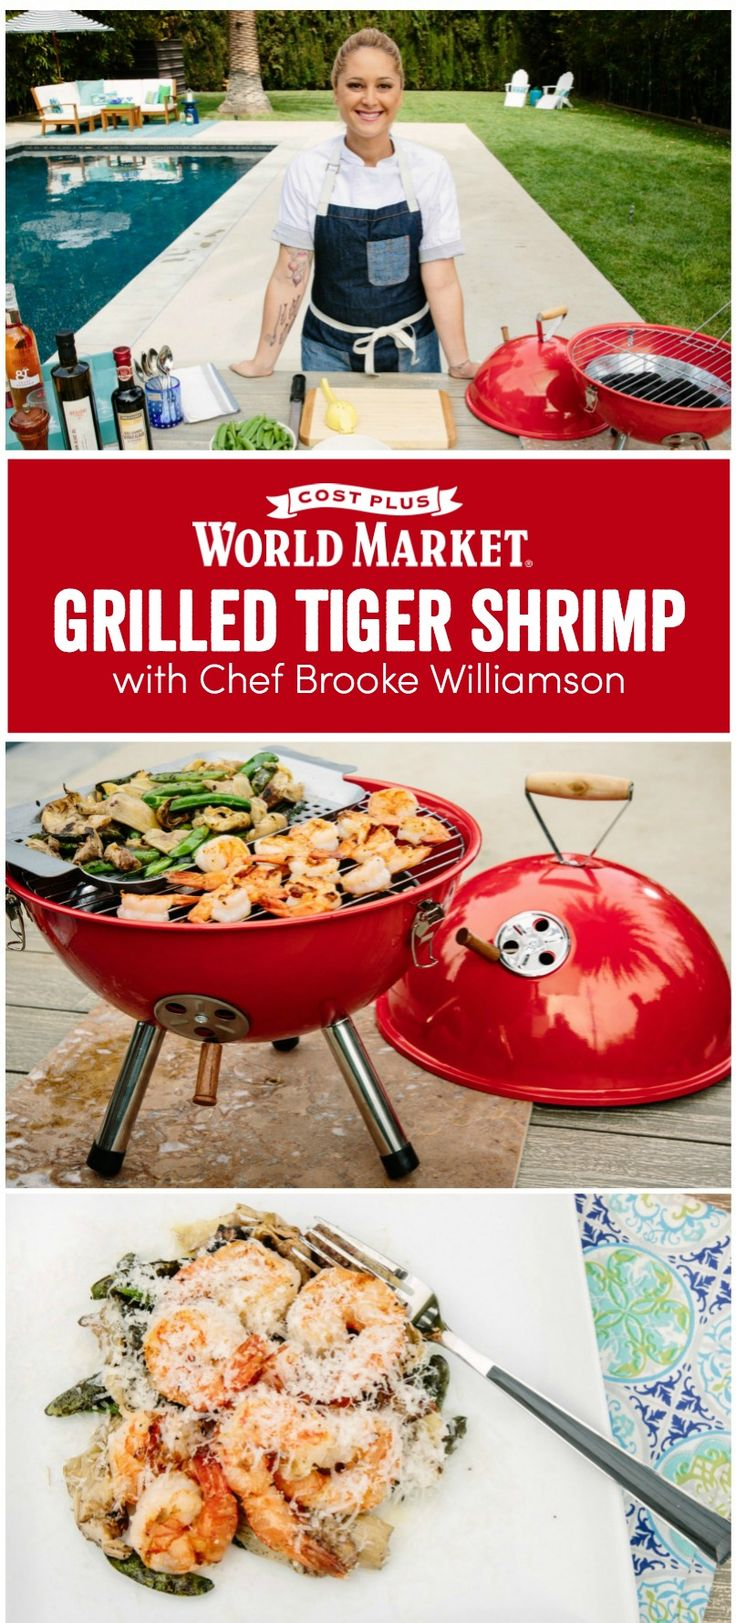 Grilled Tiger Shrimp Recipe and Video Celebrity Chef Brooke Williamson prepares a succulent, visual feast that any home cook can prepare in just a few steps. www.worldmarket.com #CelebrateOutdoors